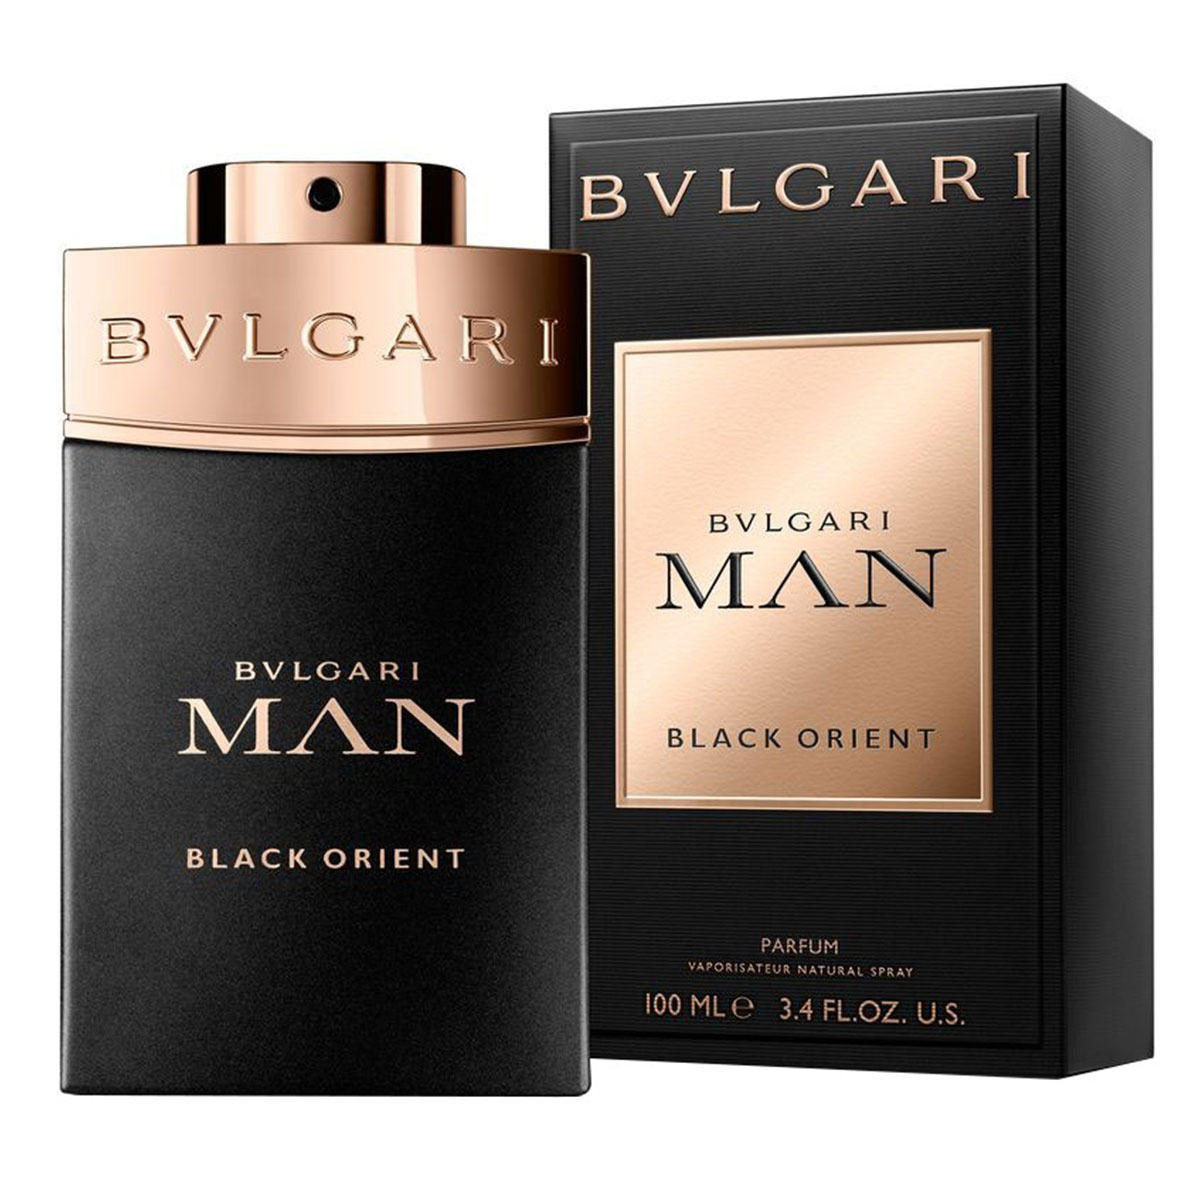 Bvlgari Man Black Orient for men 100ml